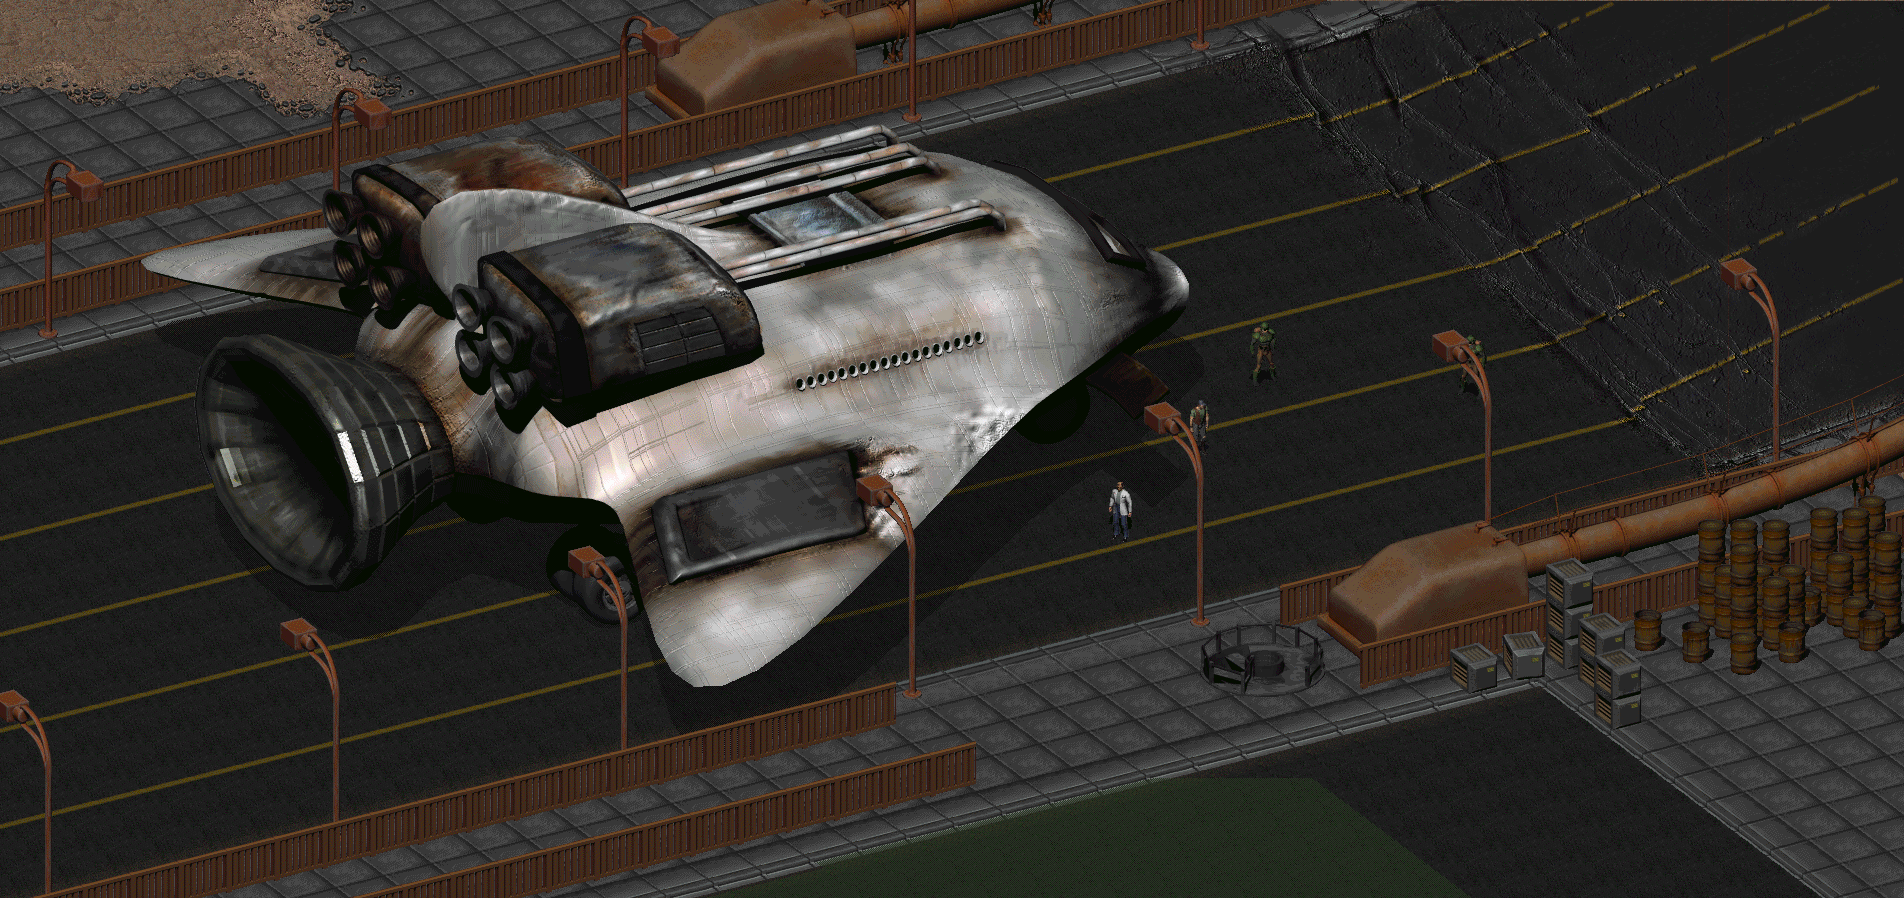 Fo2_San_Francisco_Shuttle.png